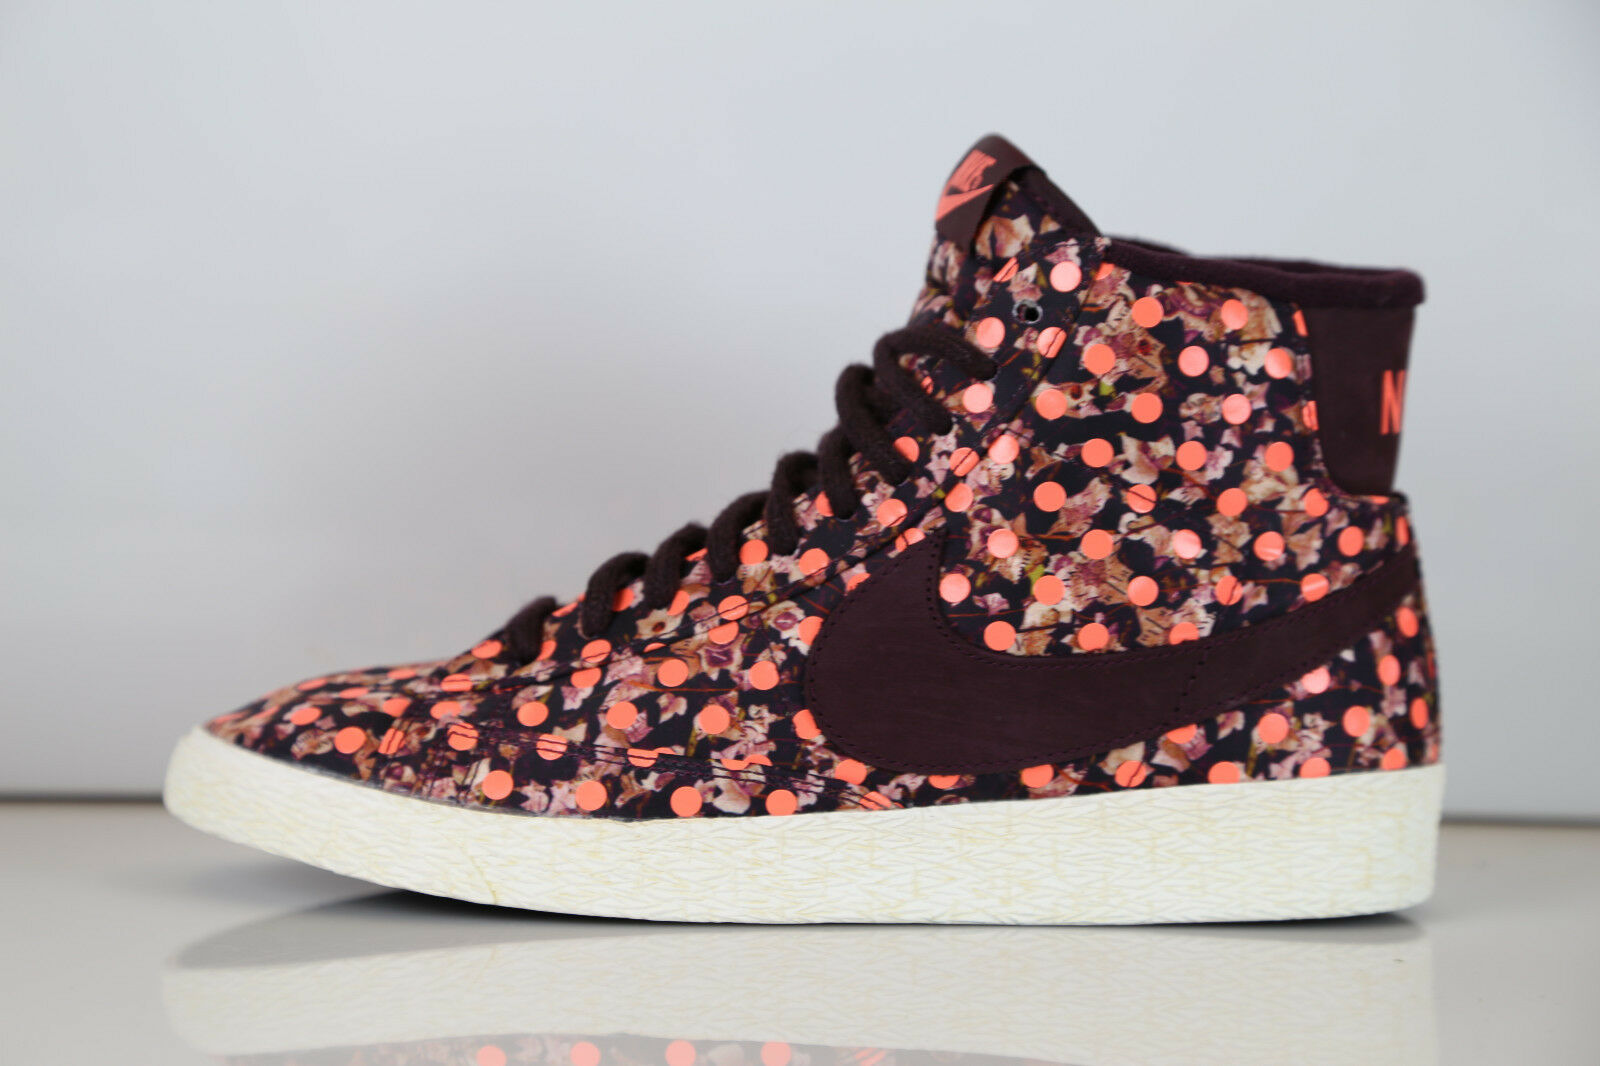 Nike Womens Blazer X Liberty of London LIB VNTG Mid QS 529037-600 6-8 supreme